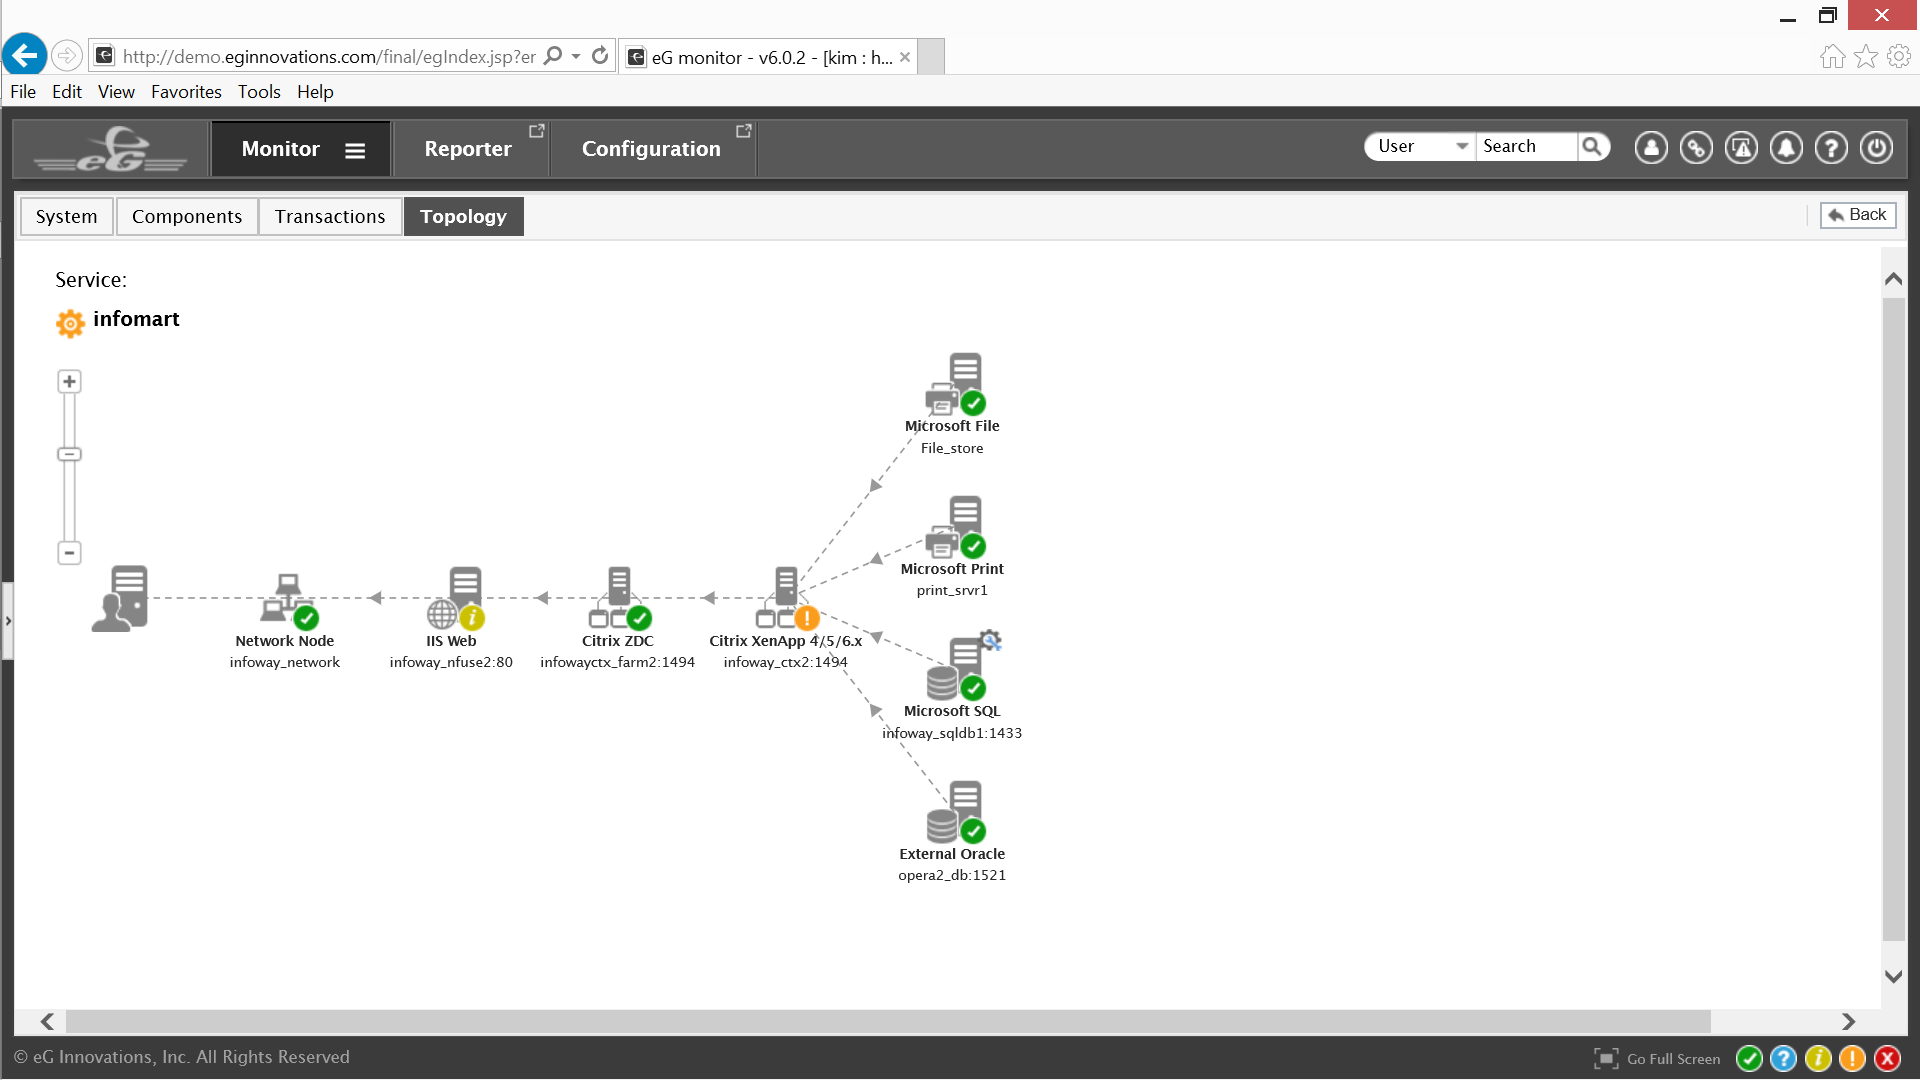 eG Citrix Topology Window for Blog